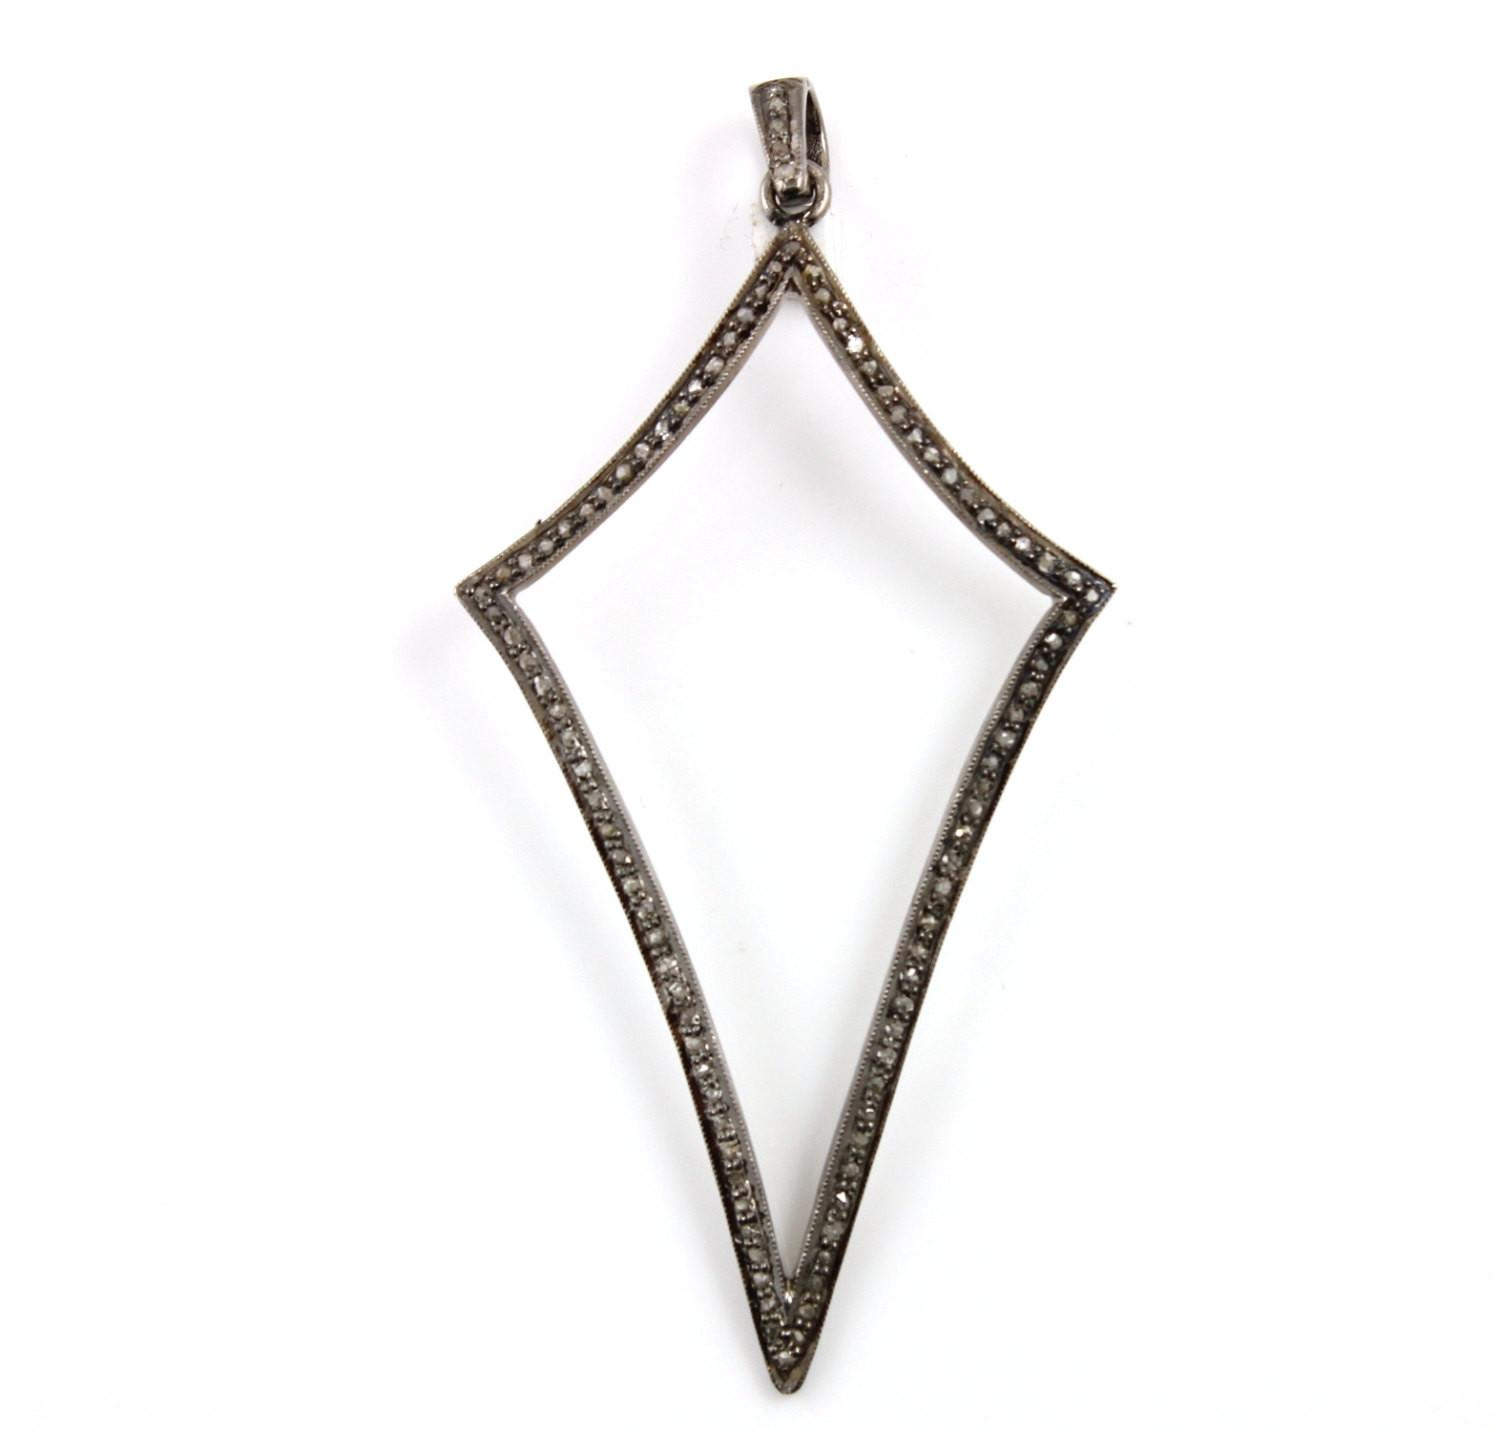 Pave Diamond Pendant Kite